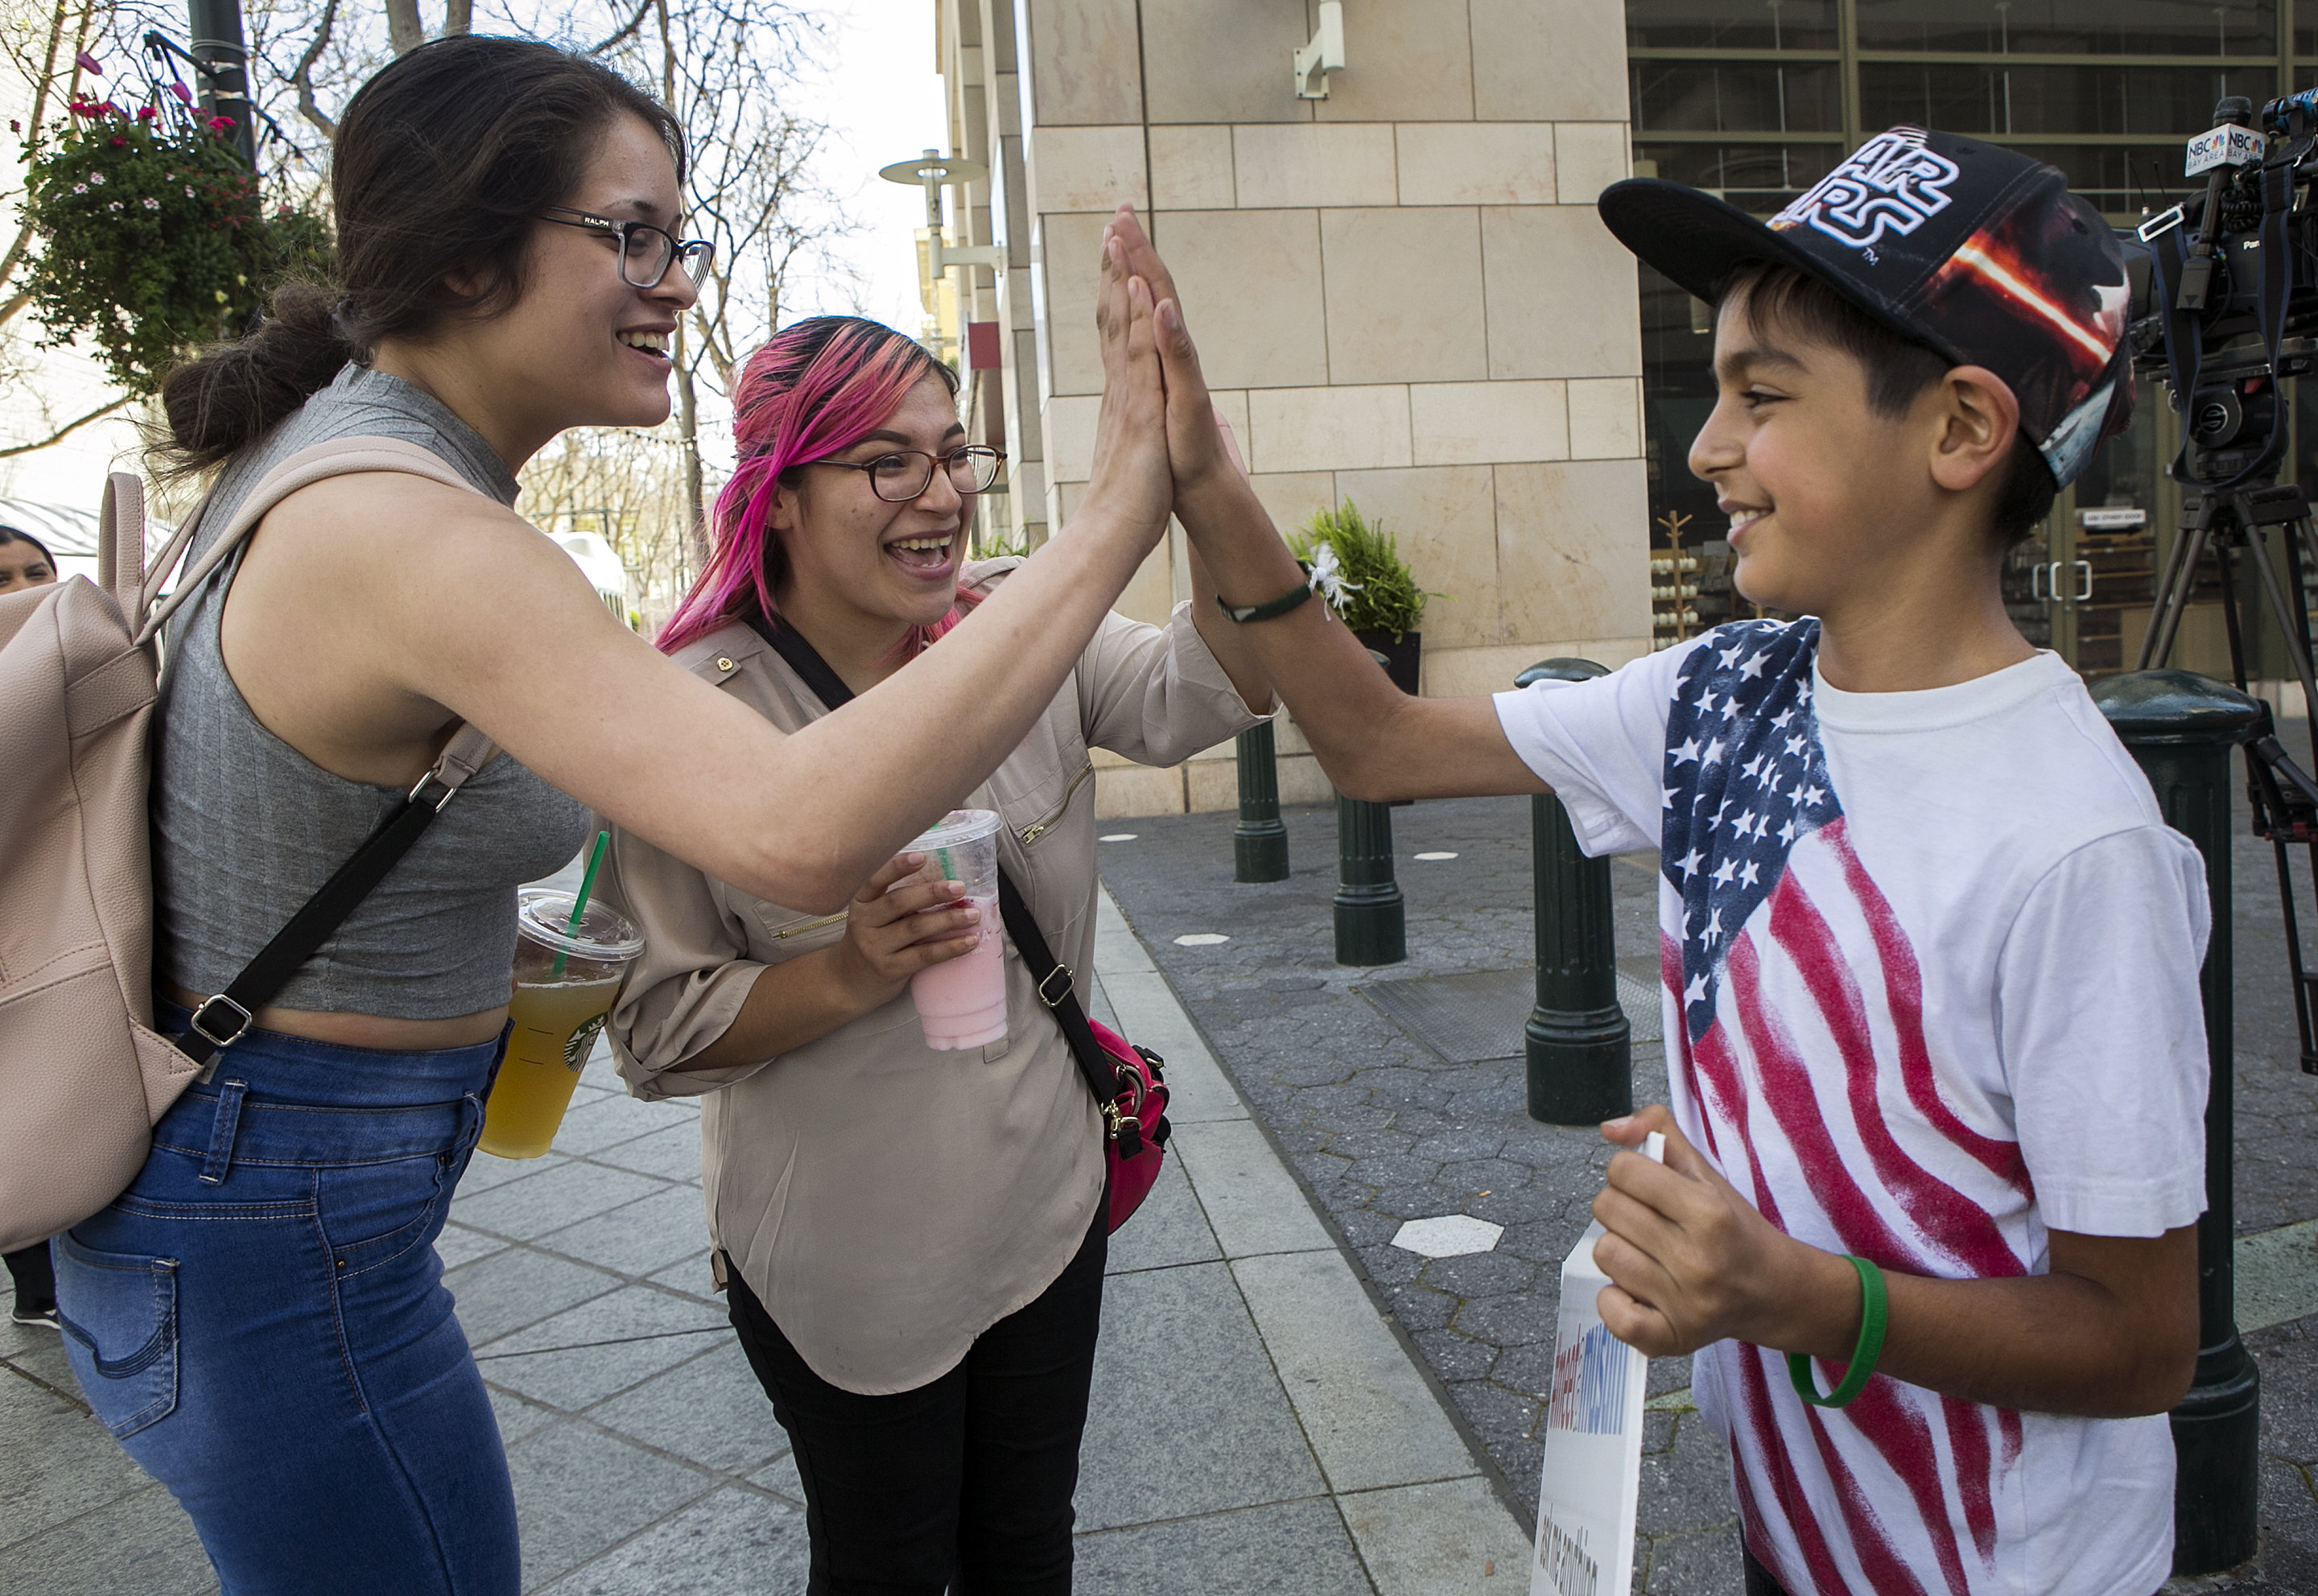 From left, Patricia Luna, 19, and Isabel Rangel, 20, both of San Jose, high five Rizwan Khan, 10, a Muslim from San Jose, during a